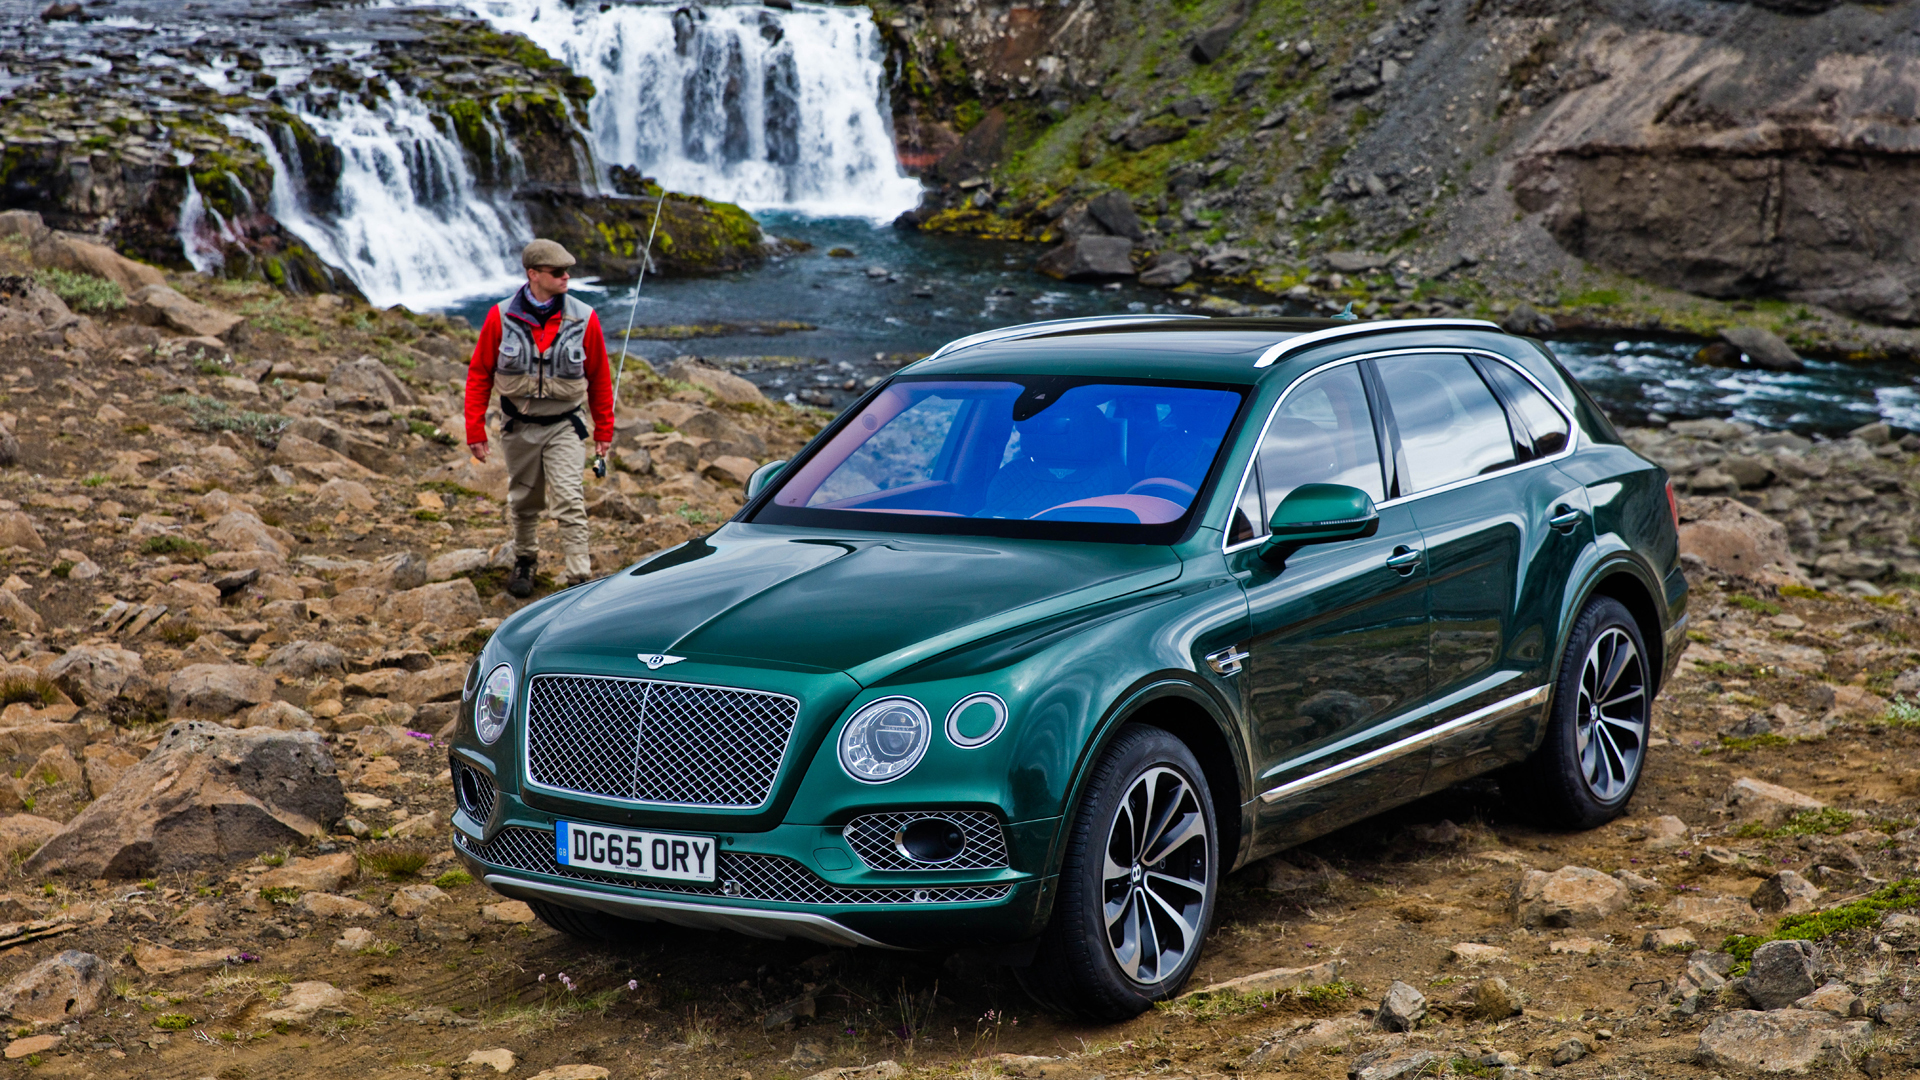 bentley-bentayga-fly-fishing-02-1